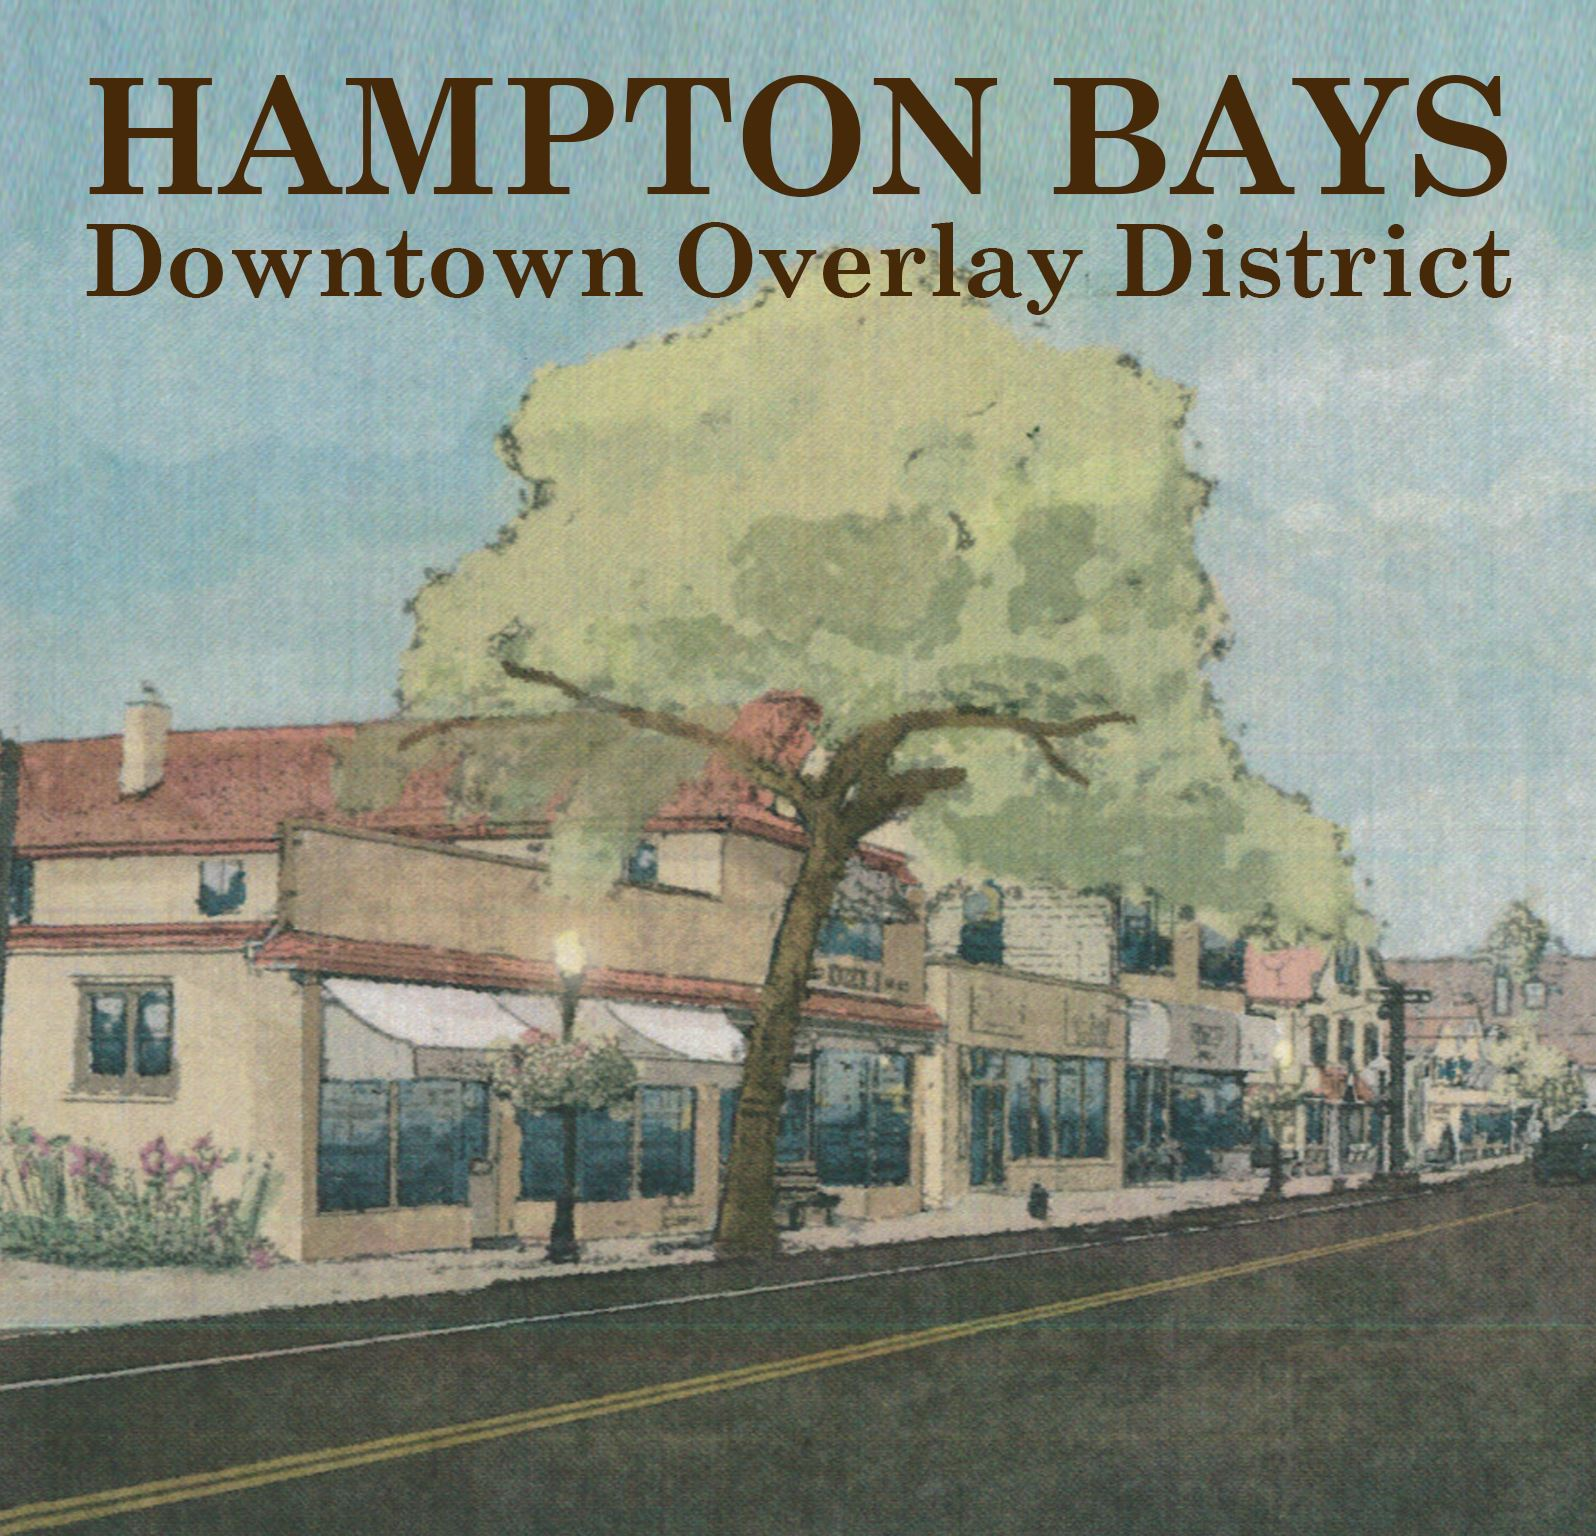 HB Overlay District